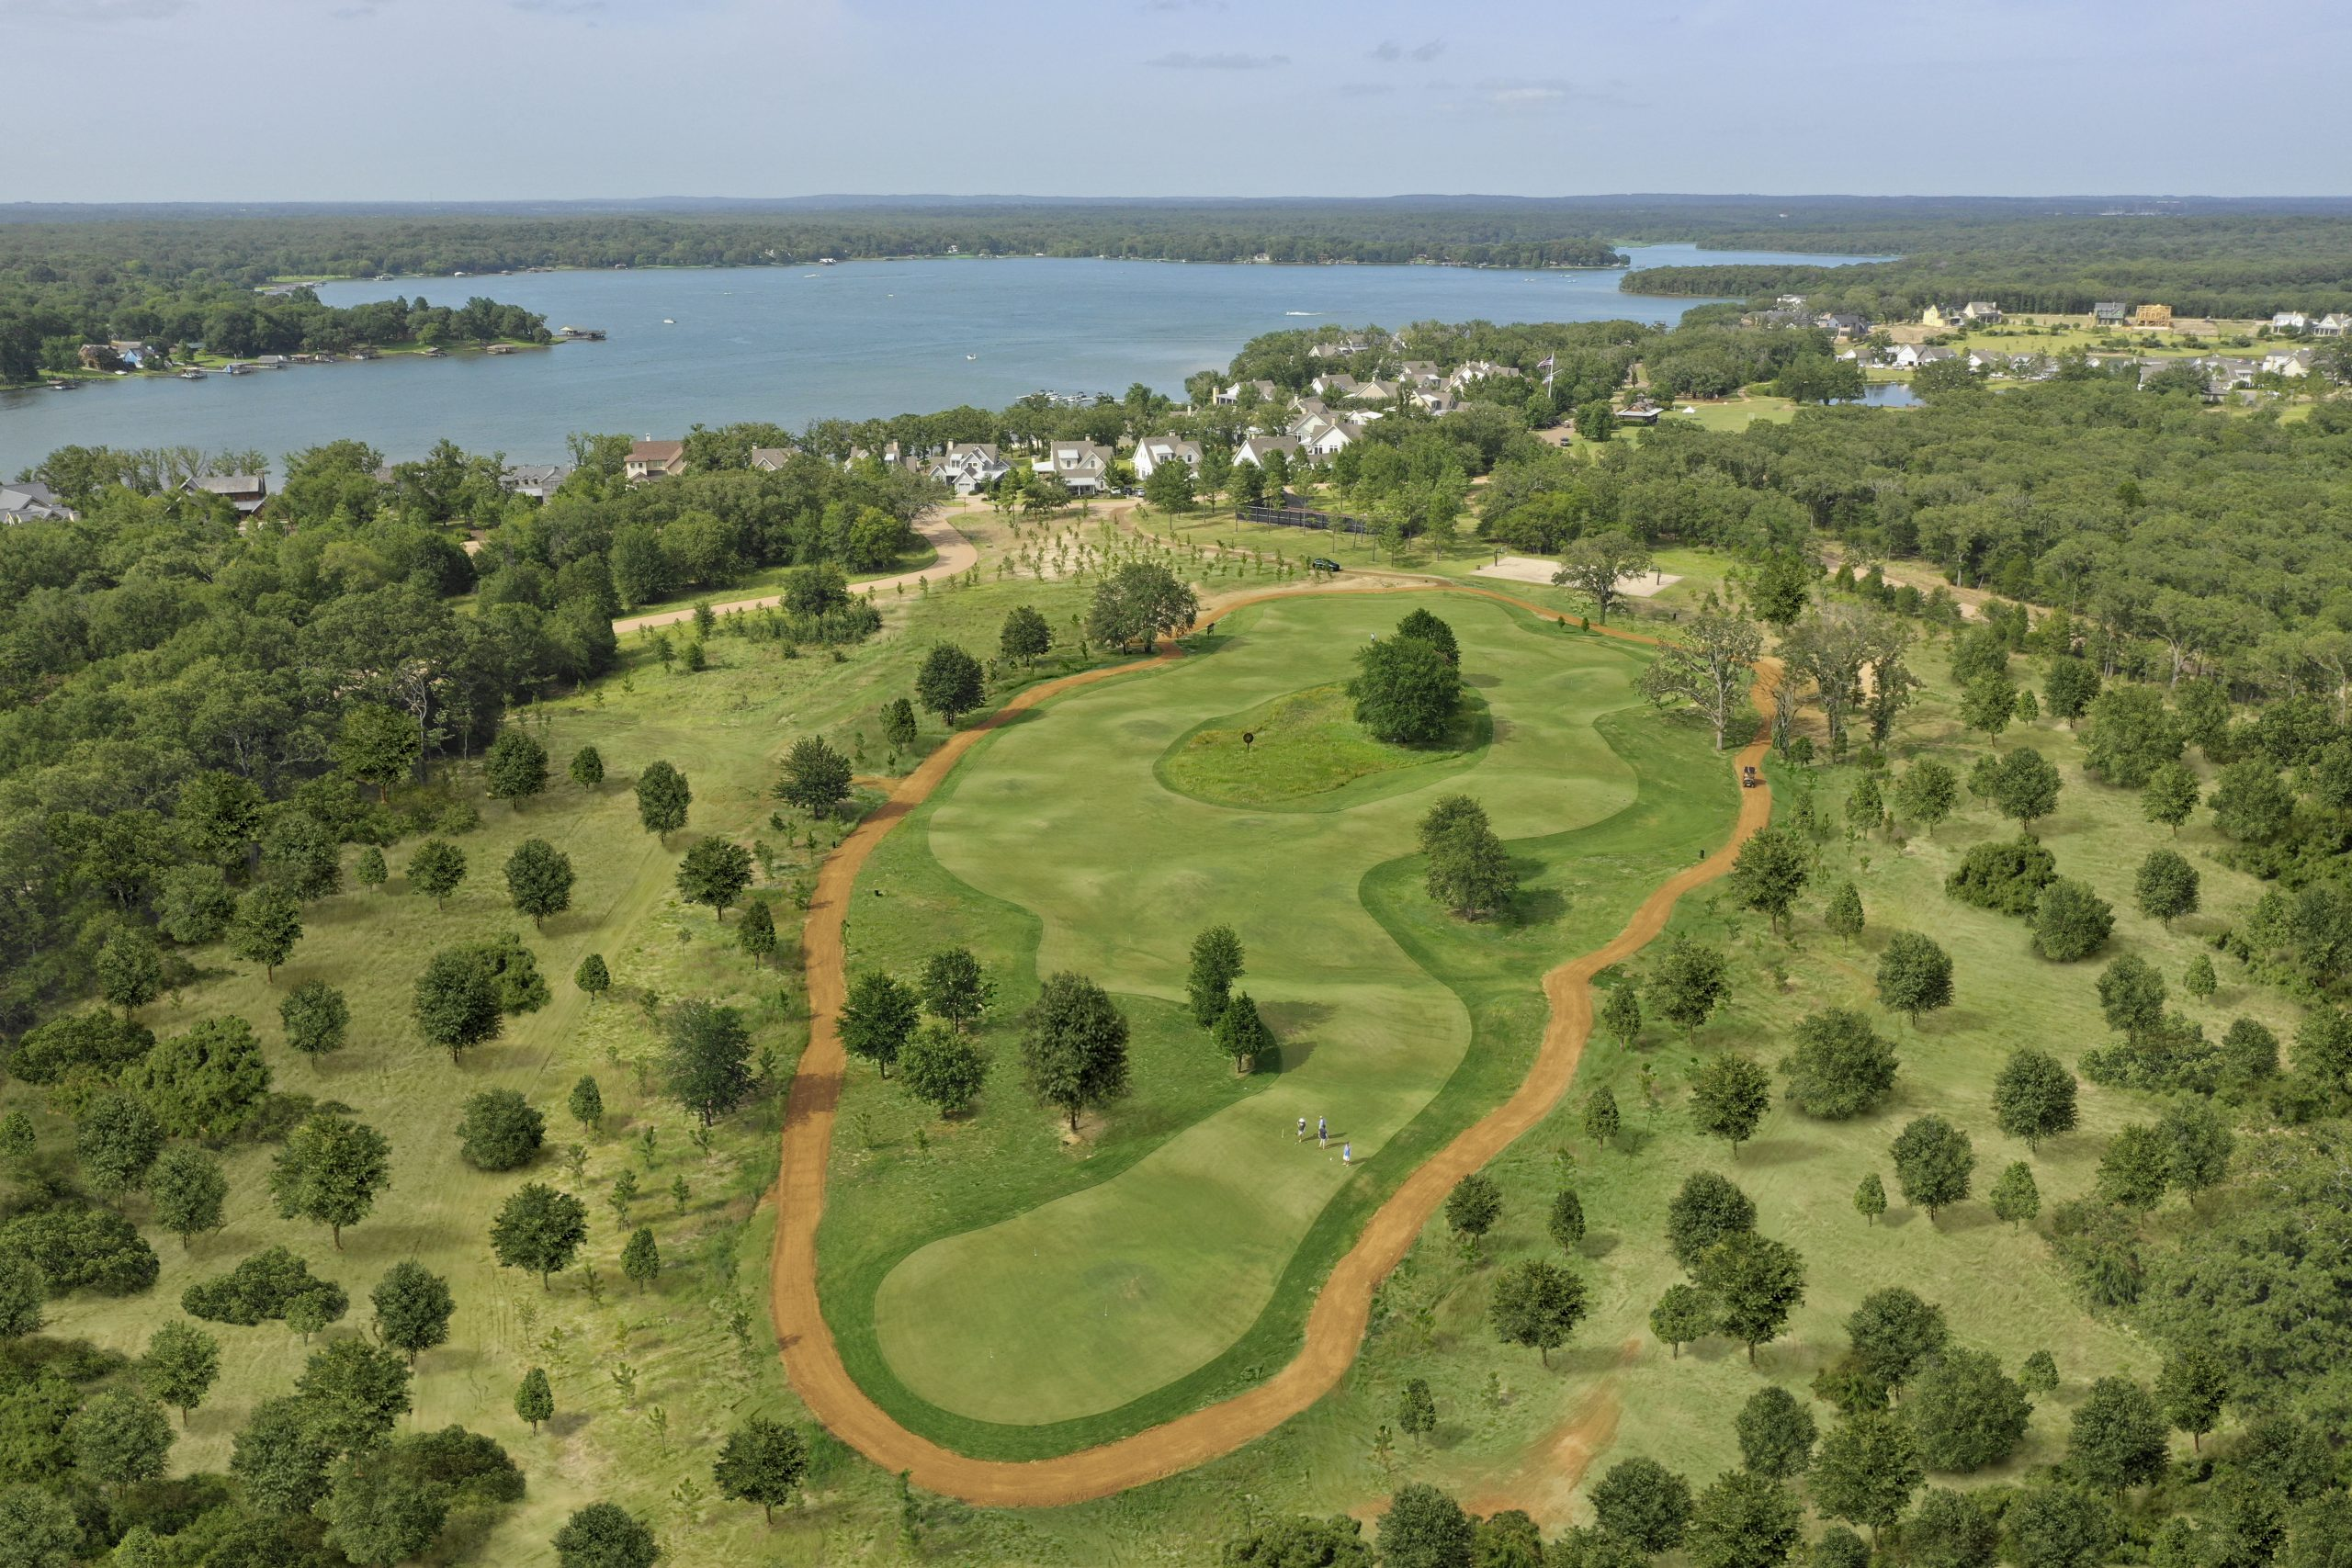 aerial view of walking trails